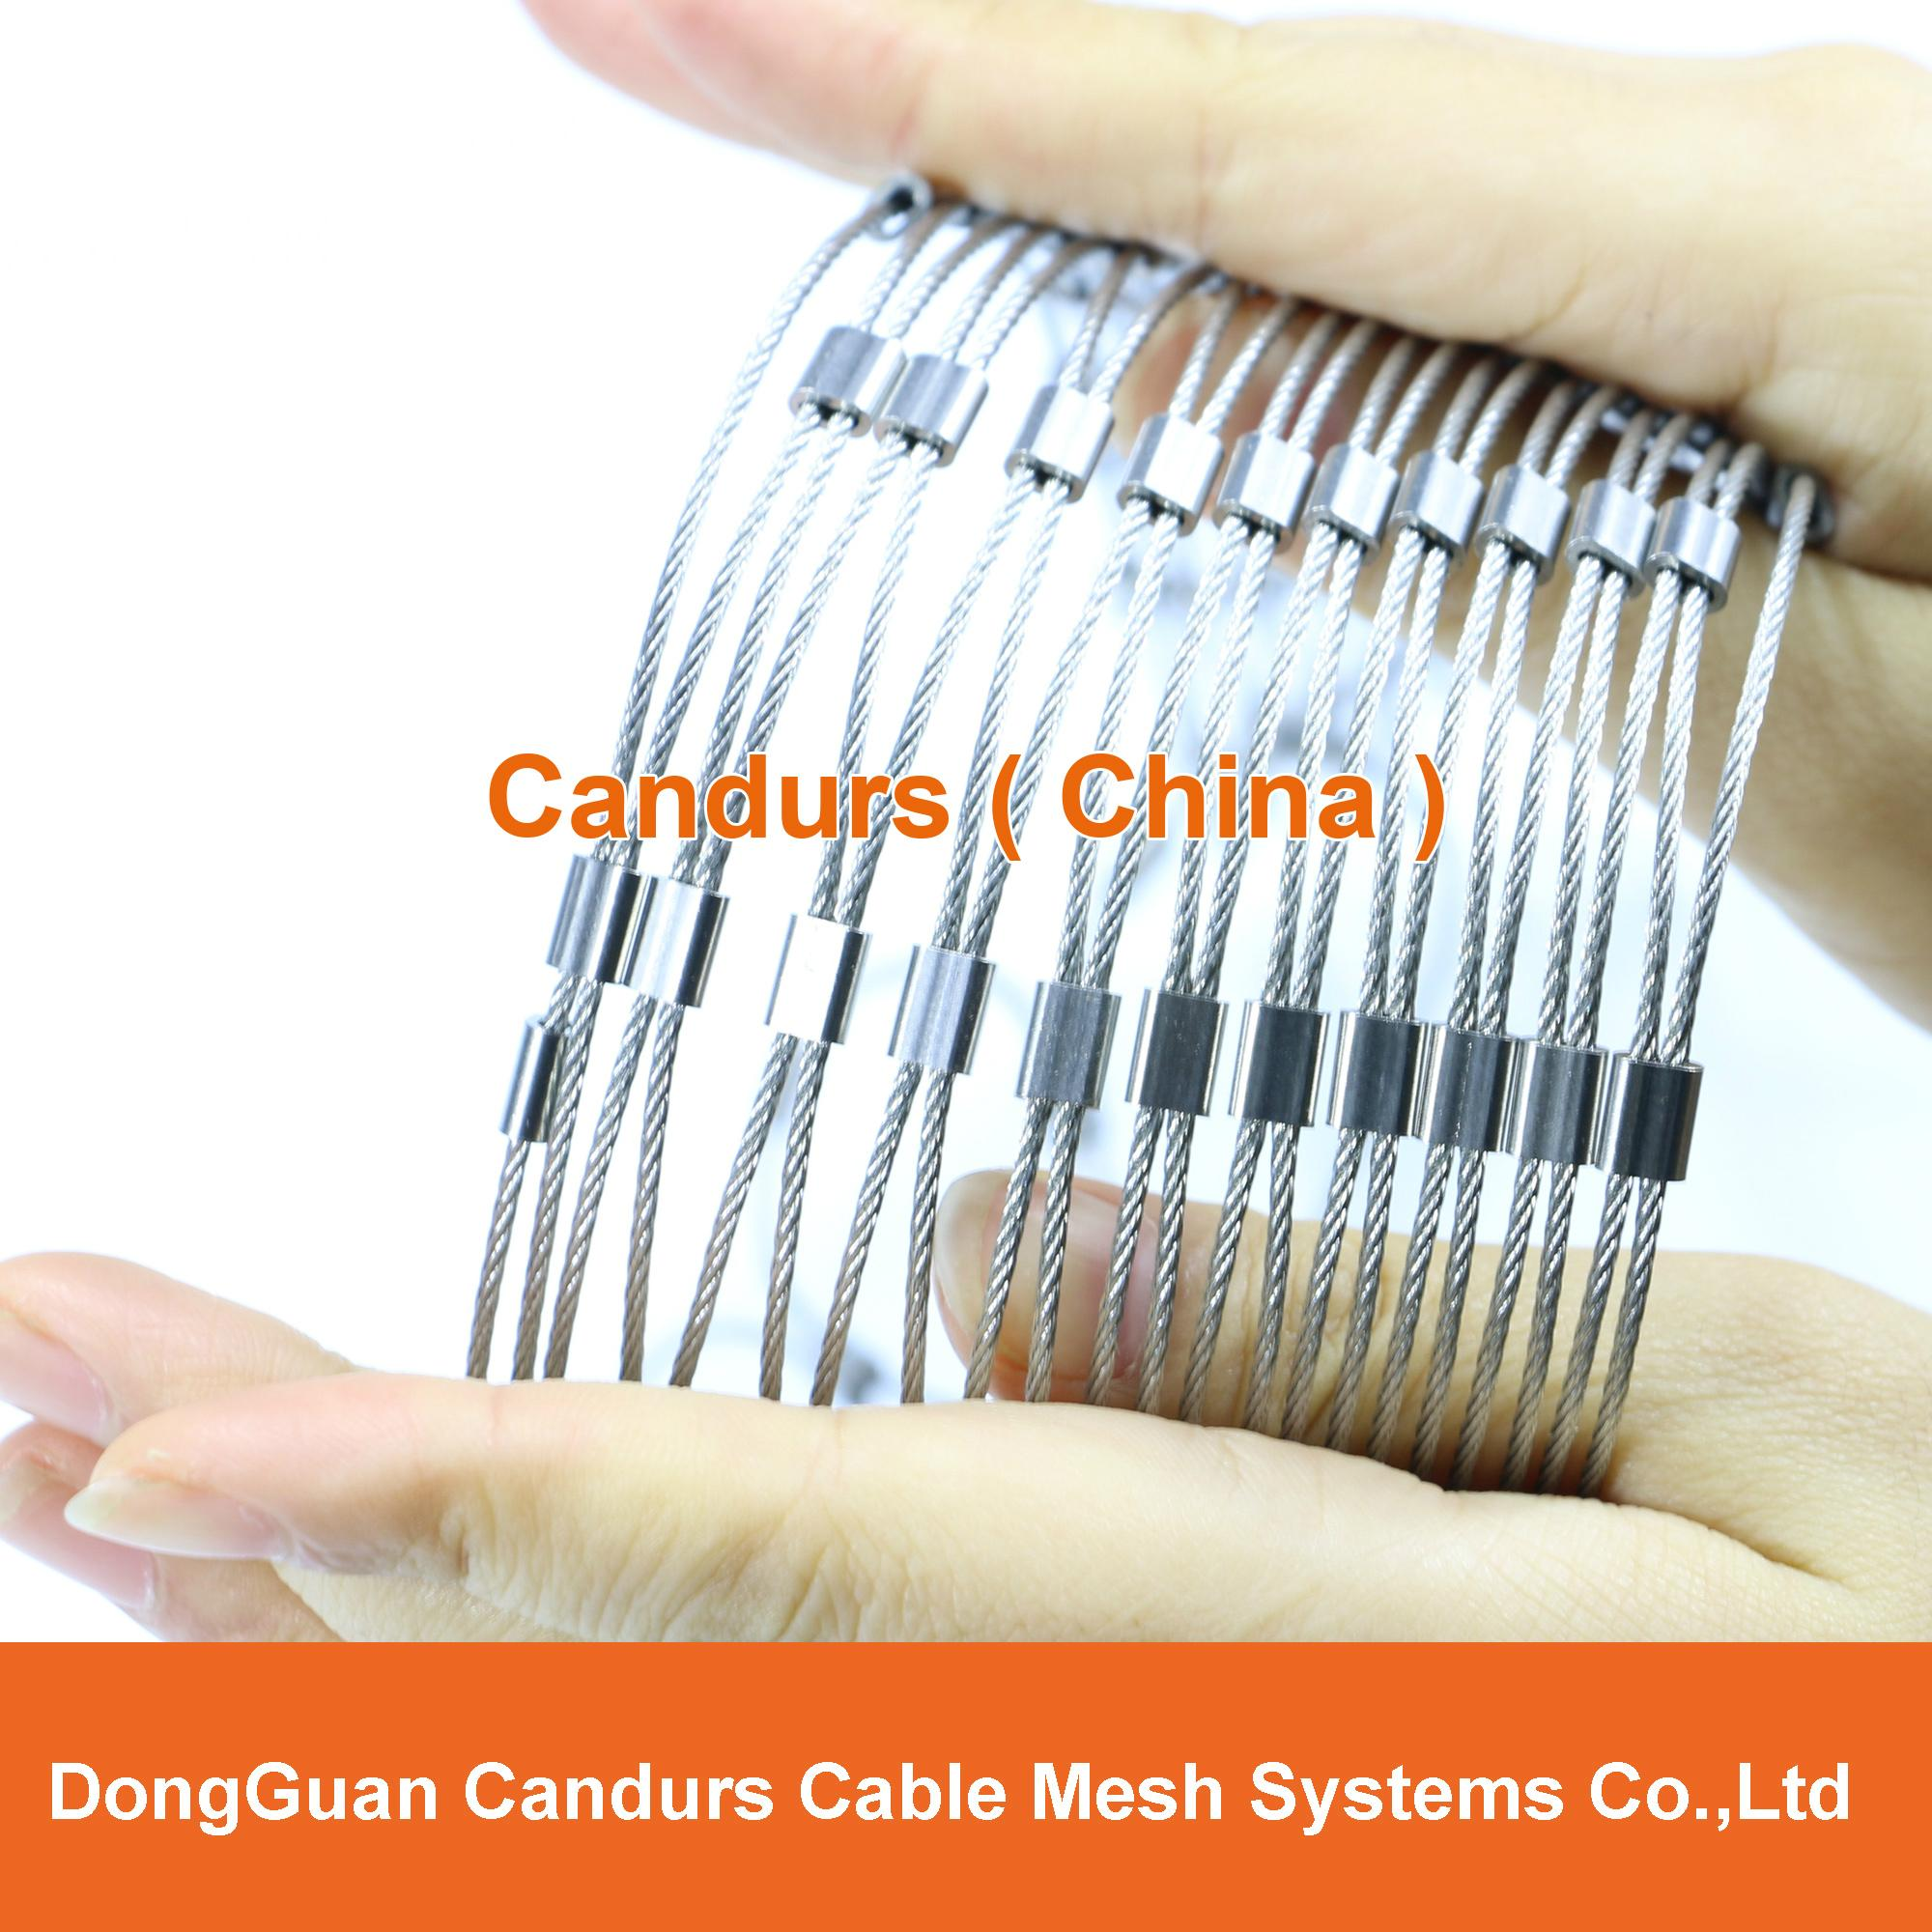 X Tend Flexible Stainless Steel Cable (Rope) Mesh 2